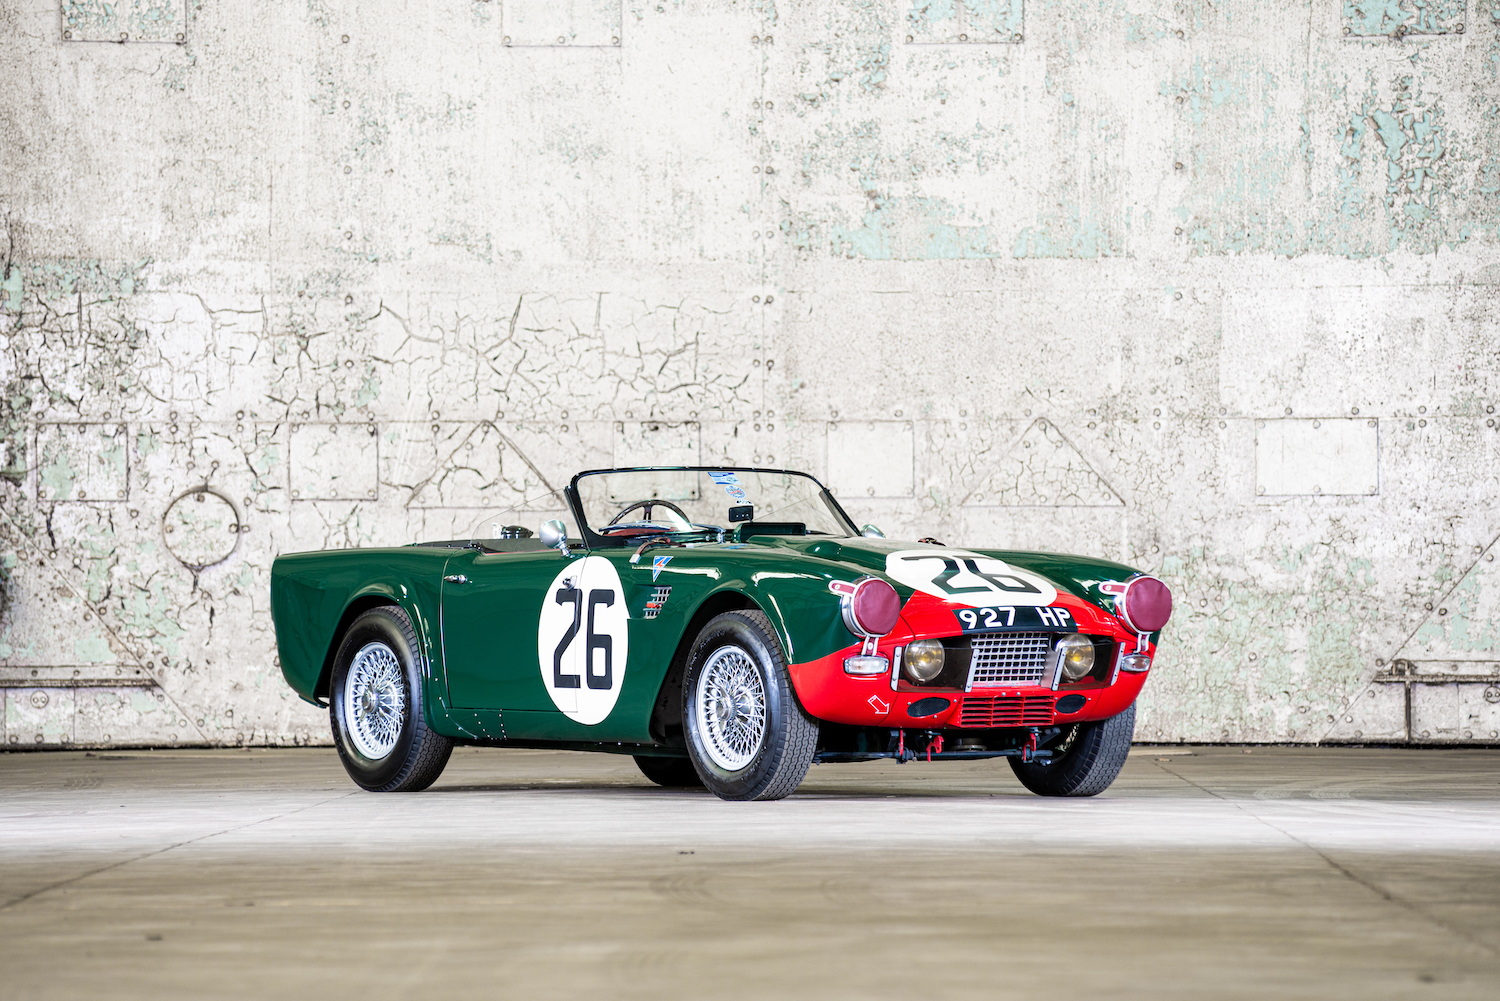 This gorgeous works Triumph TRS raced at Le Mans in 1960 and 1961